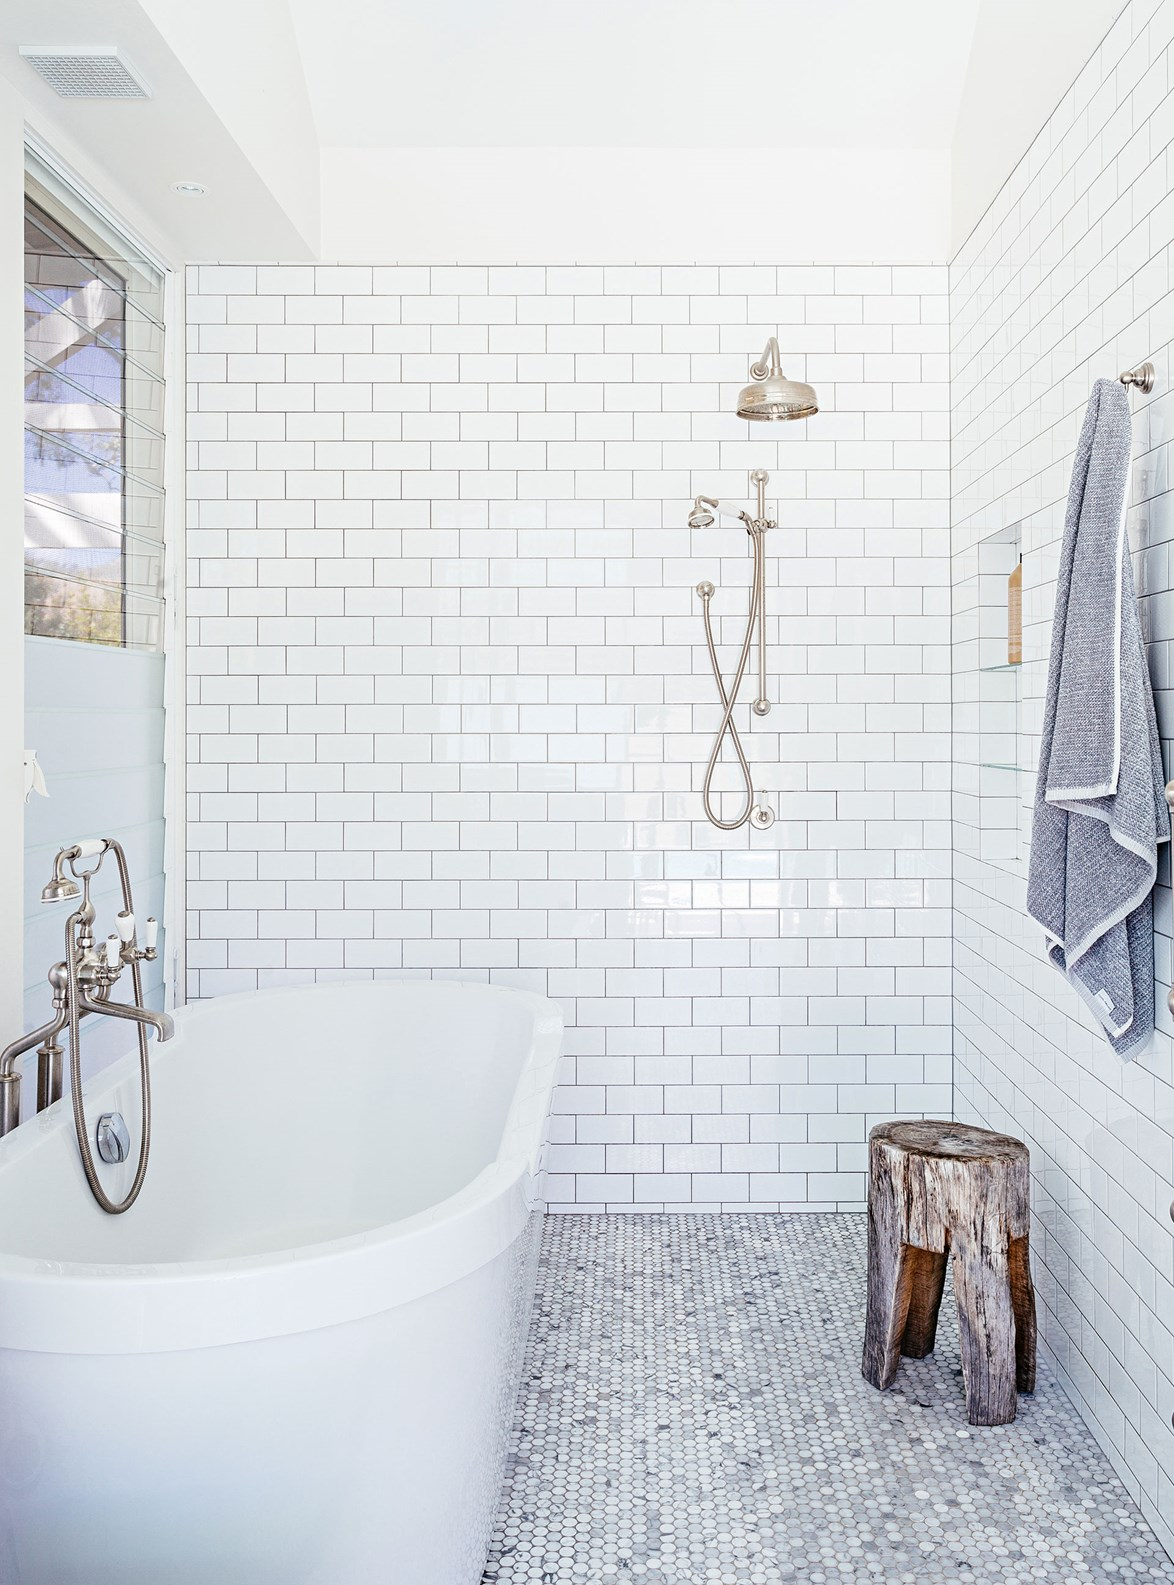 Marble penny round tiles, a large freestanding bath and elegant old-fashioned tapware give this ensuite bathroom a hotel ambiance, while the timber stool give it a rustic country feel.